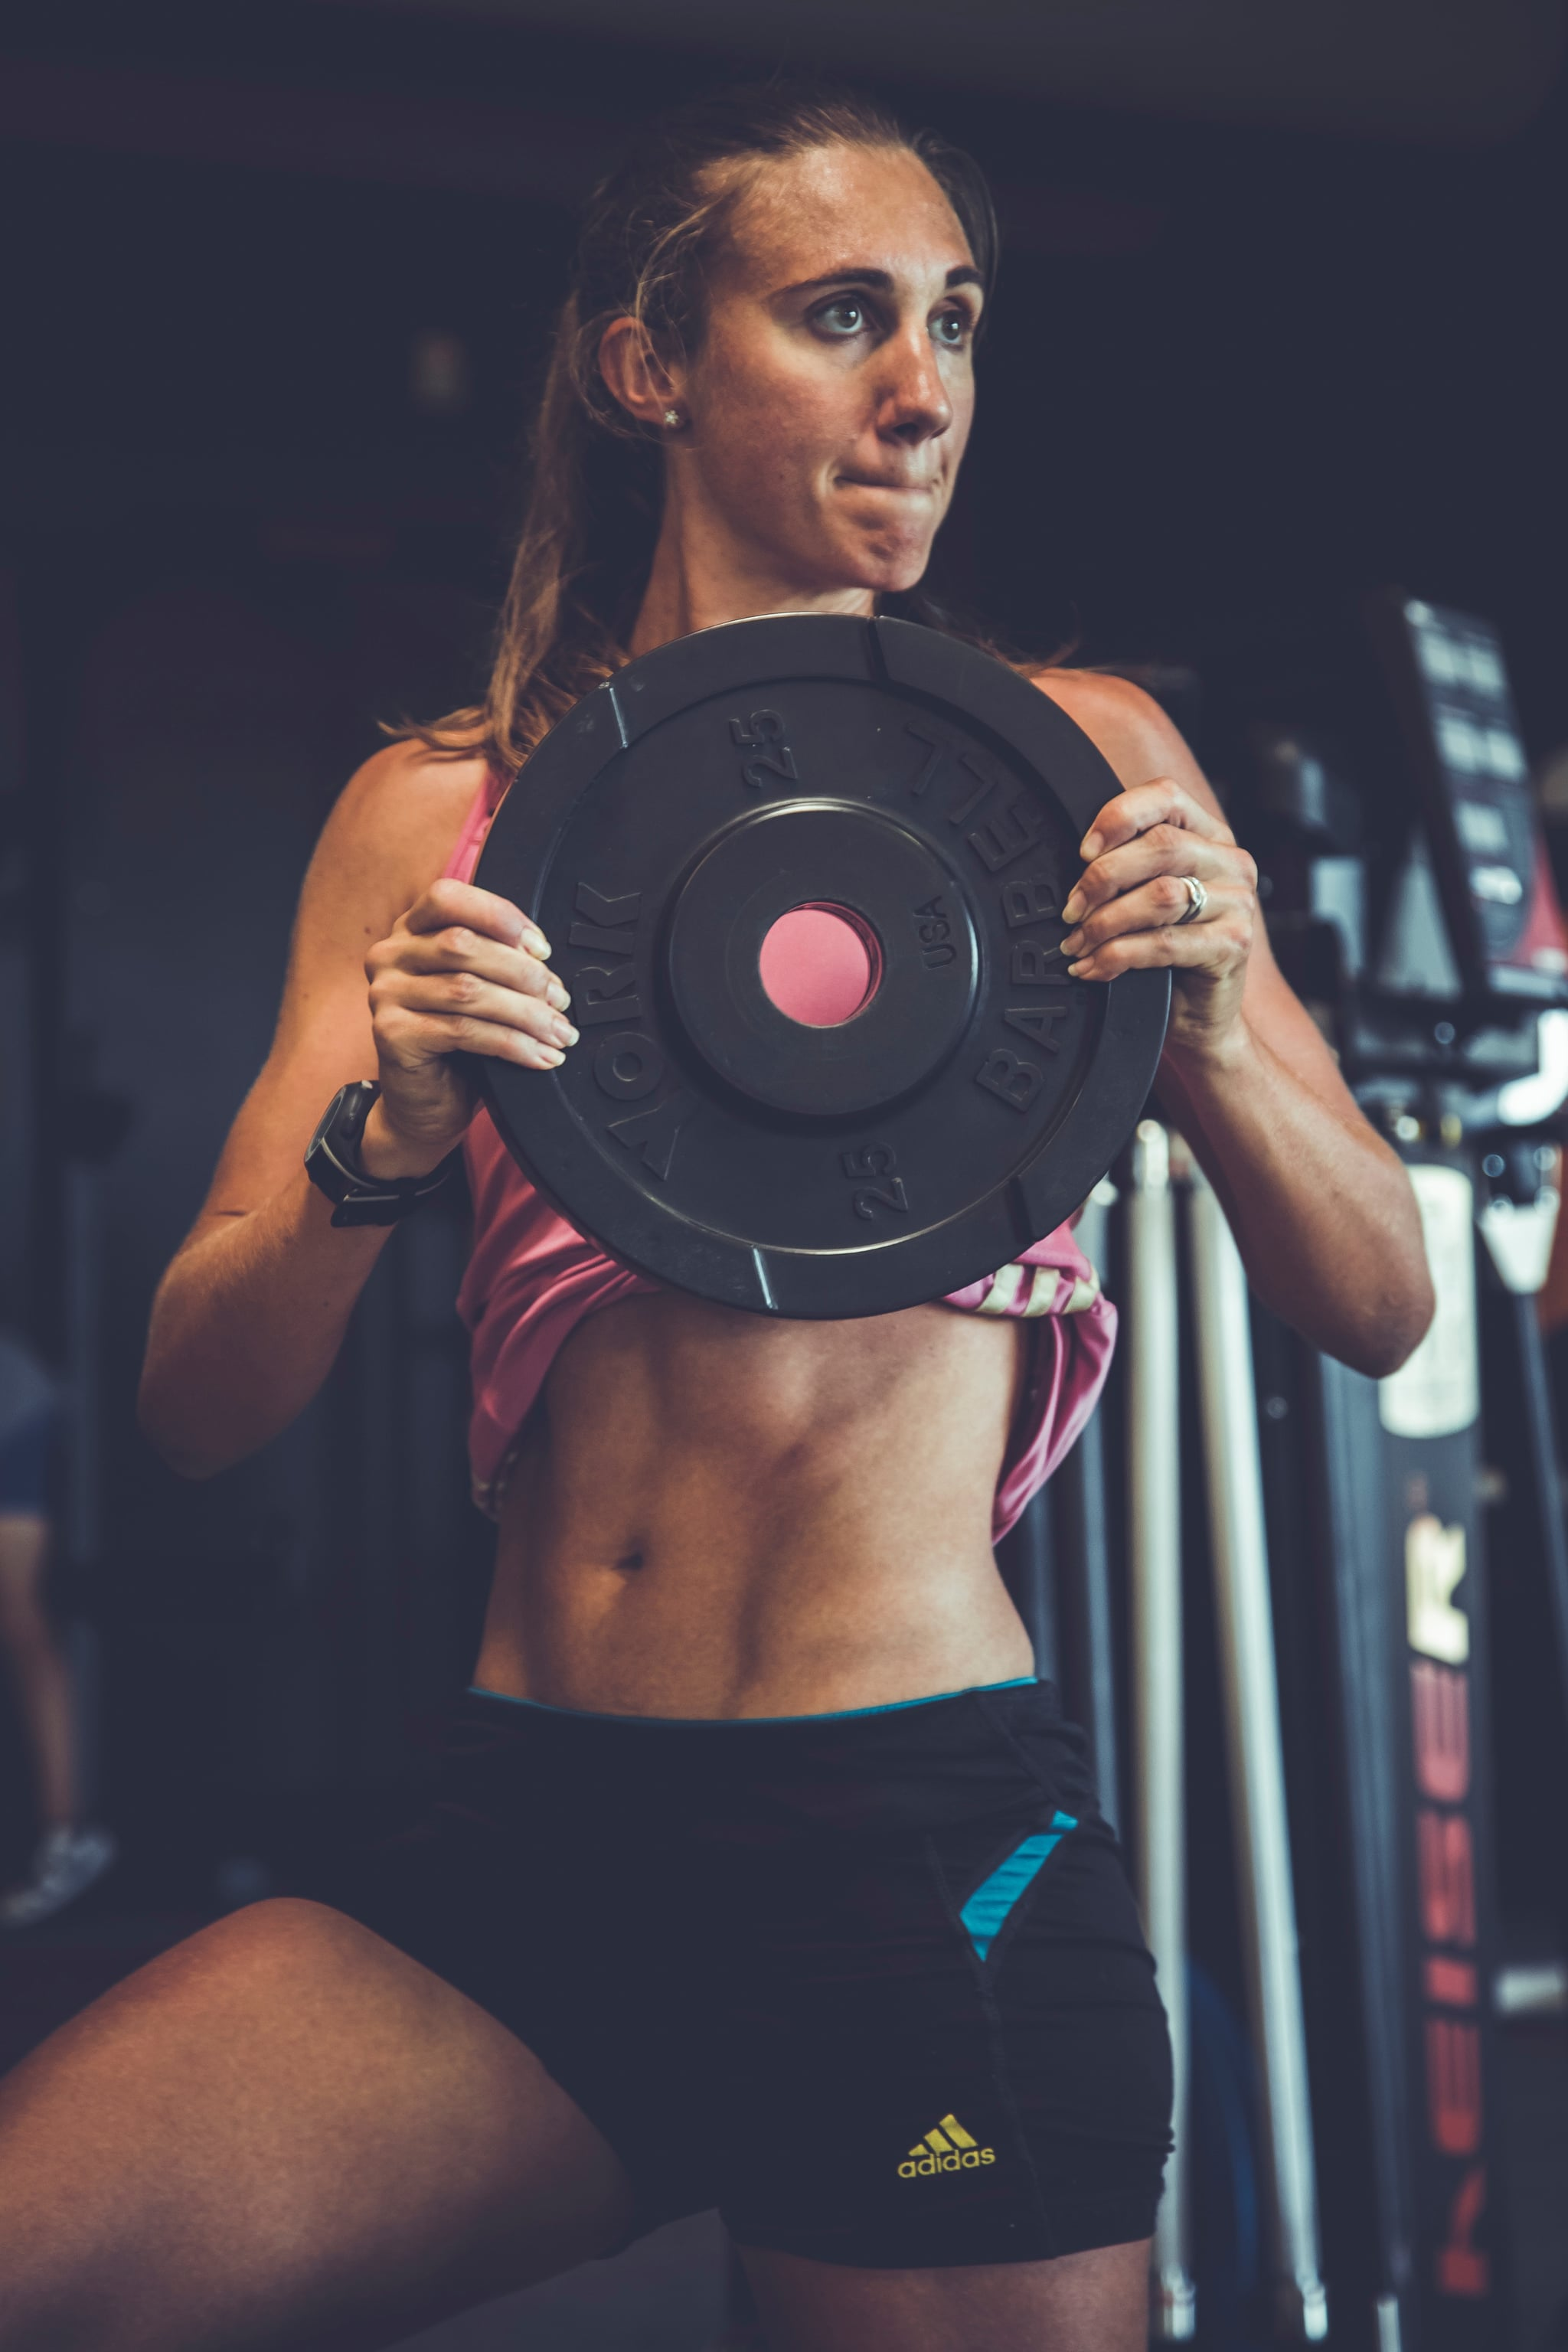 Popsugar Fitness Make These 5 Changes To Boost Your 13 Killer Circuit Workouts You Can Do At Home Minqcom For Decades The Only Pathway Weight Loss Seemed Be Cranking Up Cardio Output And Decreasing Caloric Intake A Simple Formula Accurate